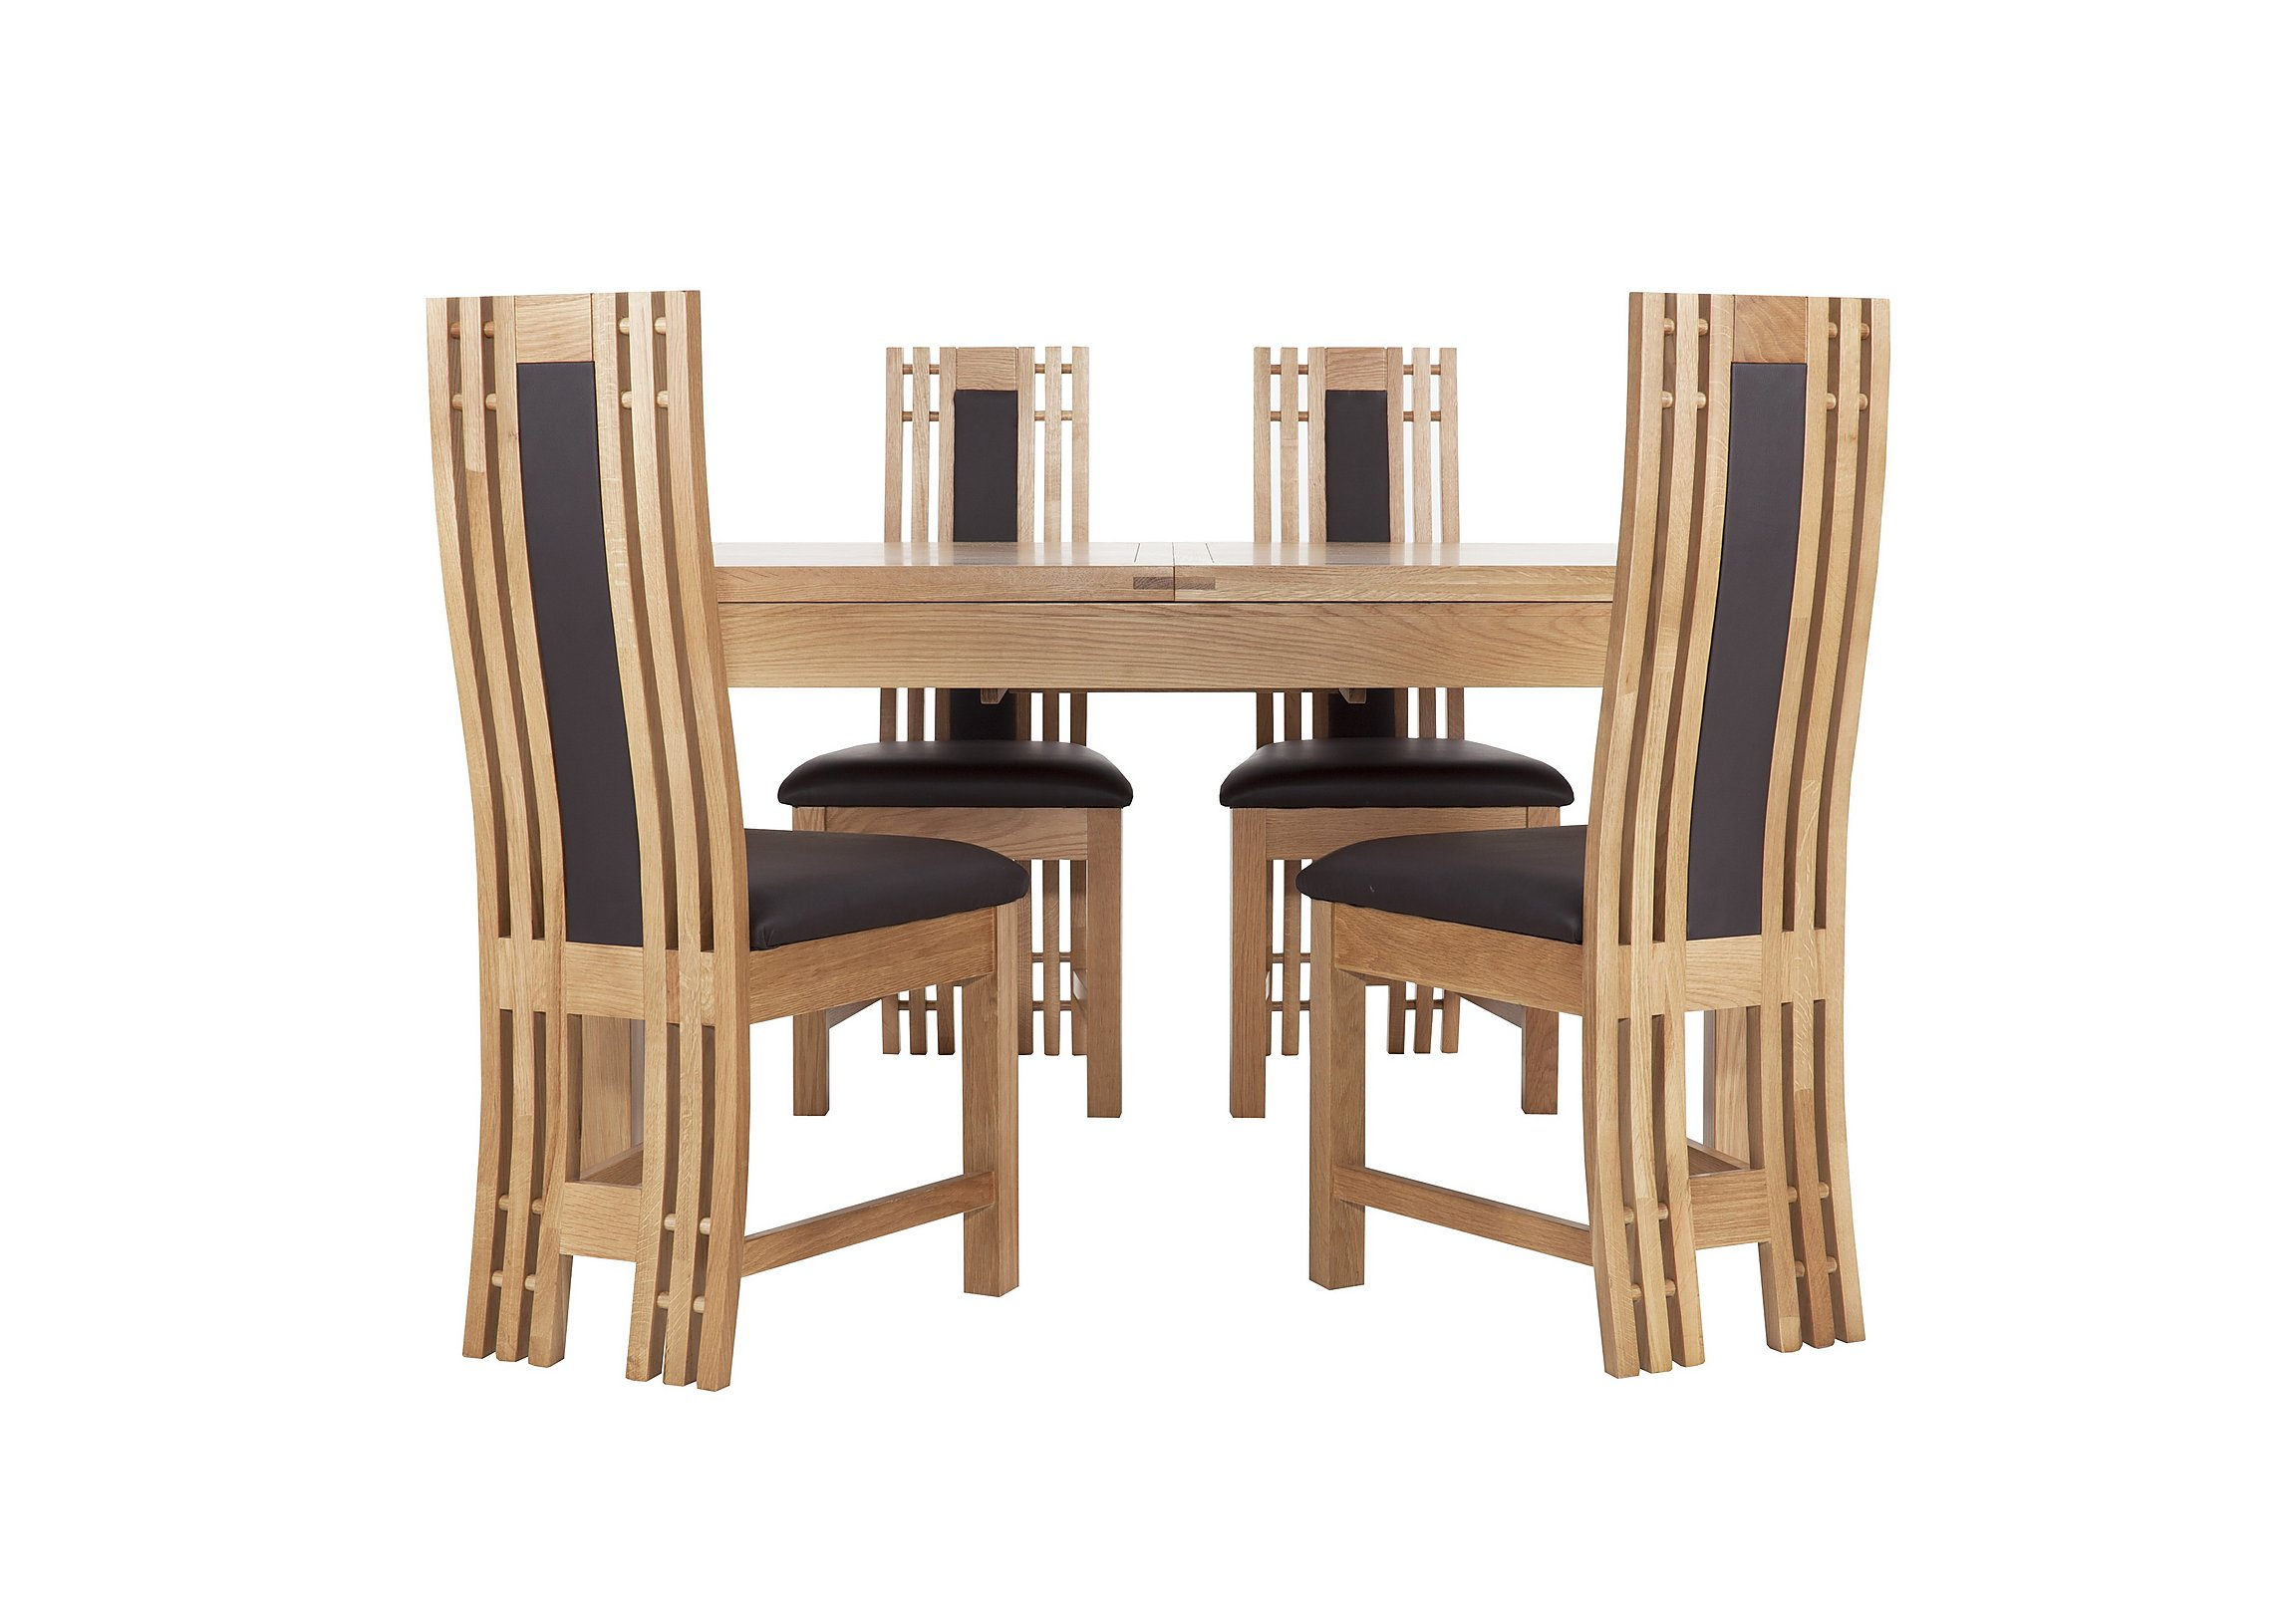 Wooden chair furniture - Save 530 Modena Small Table And 4 Wooden Chairs